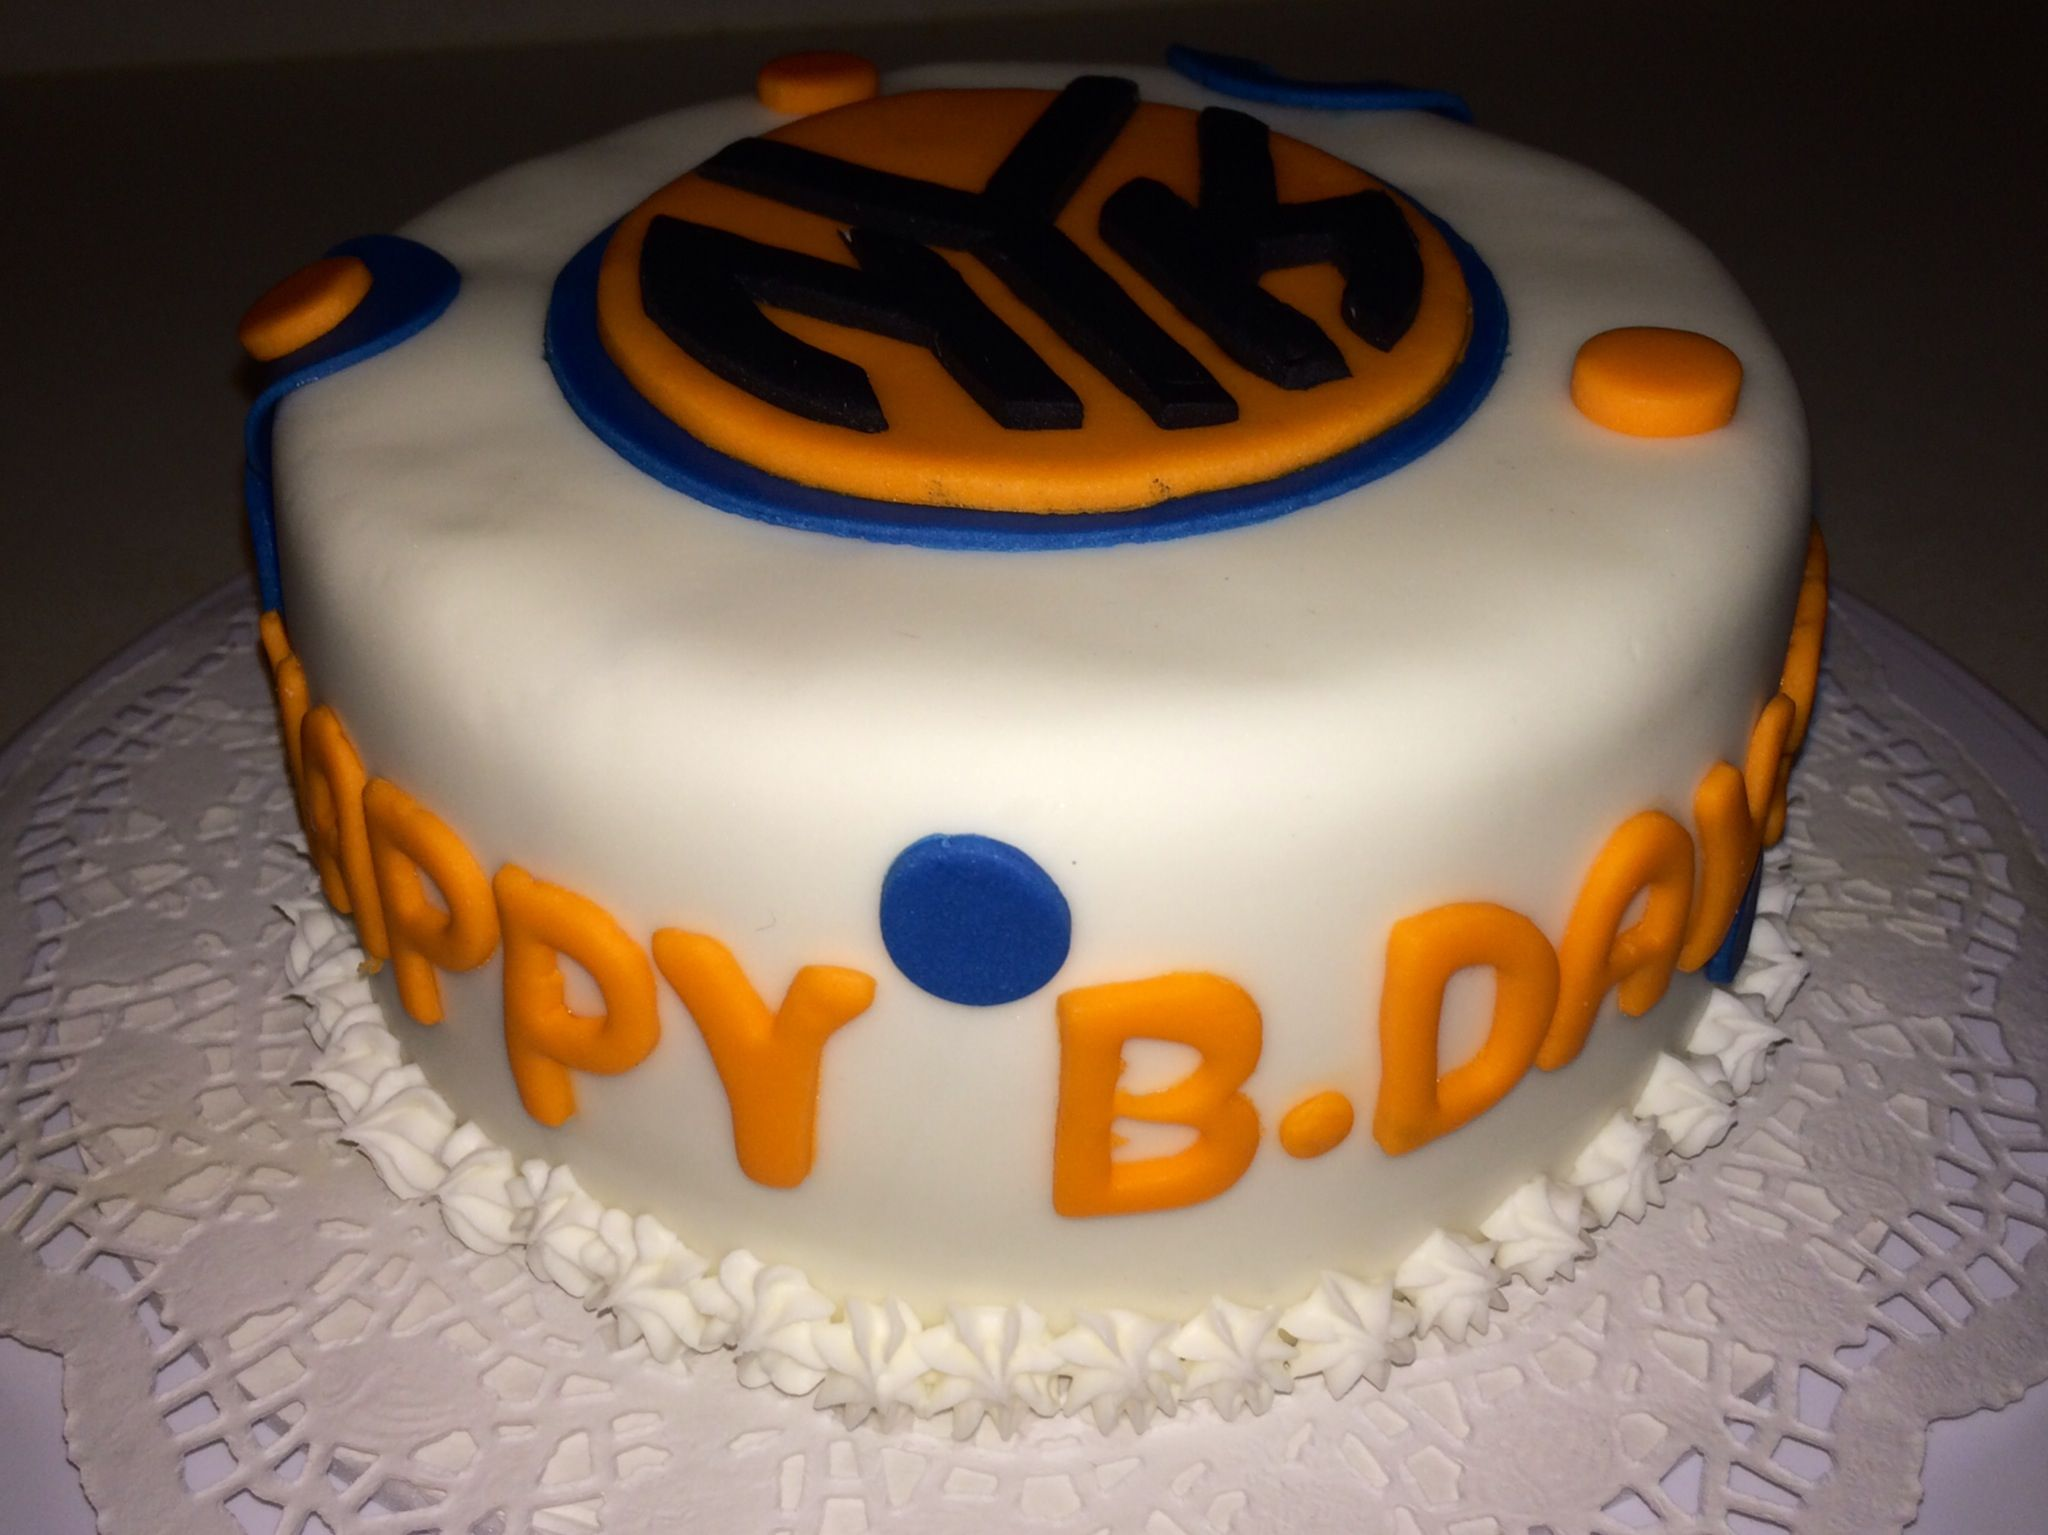 New York Knicks Cake For A Guy Tortas Pinterest Cake And - Birthday cake for a guy